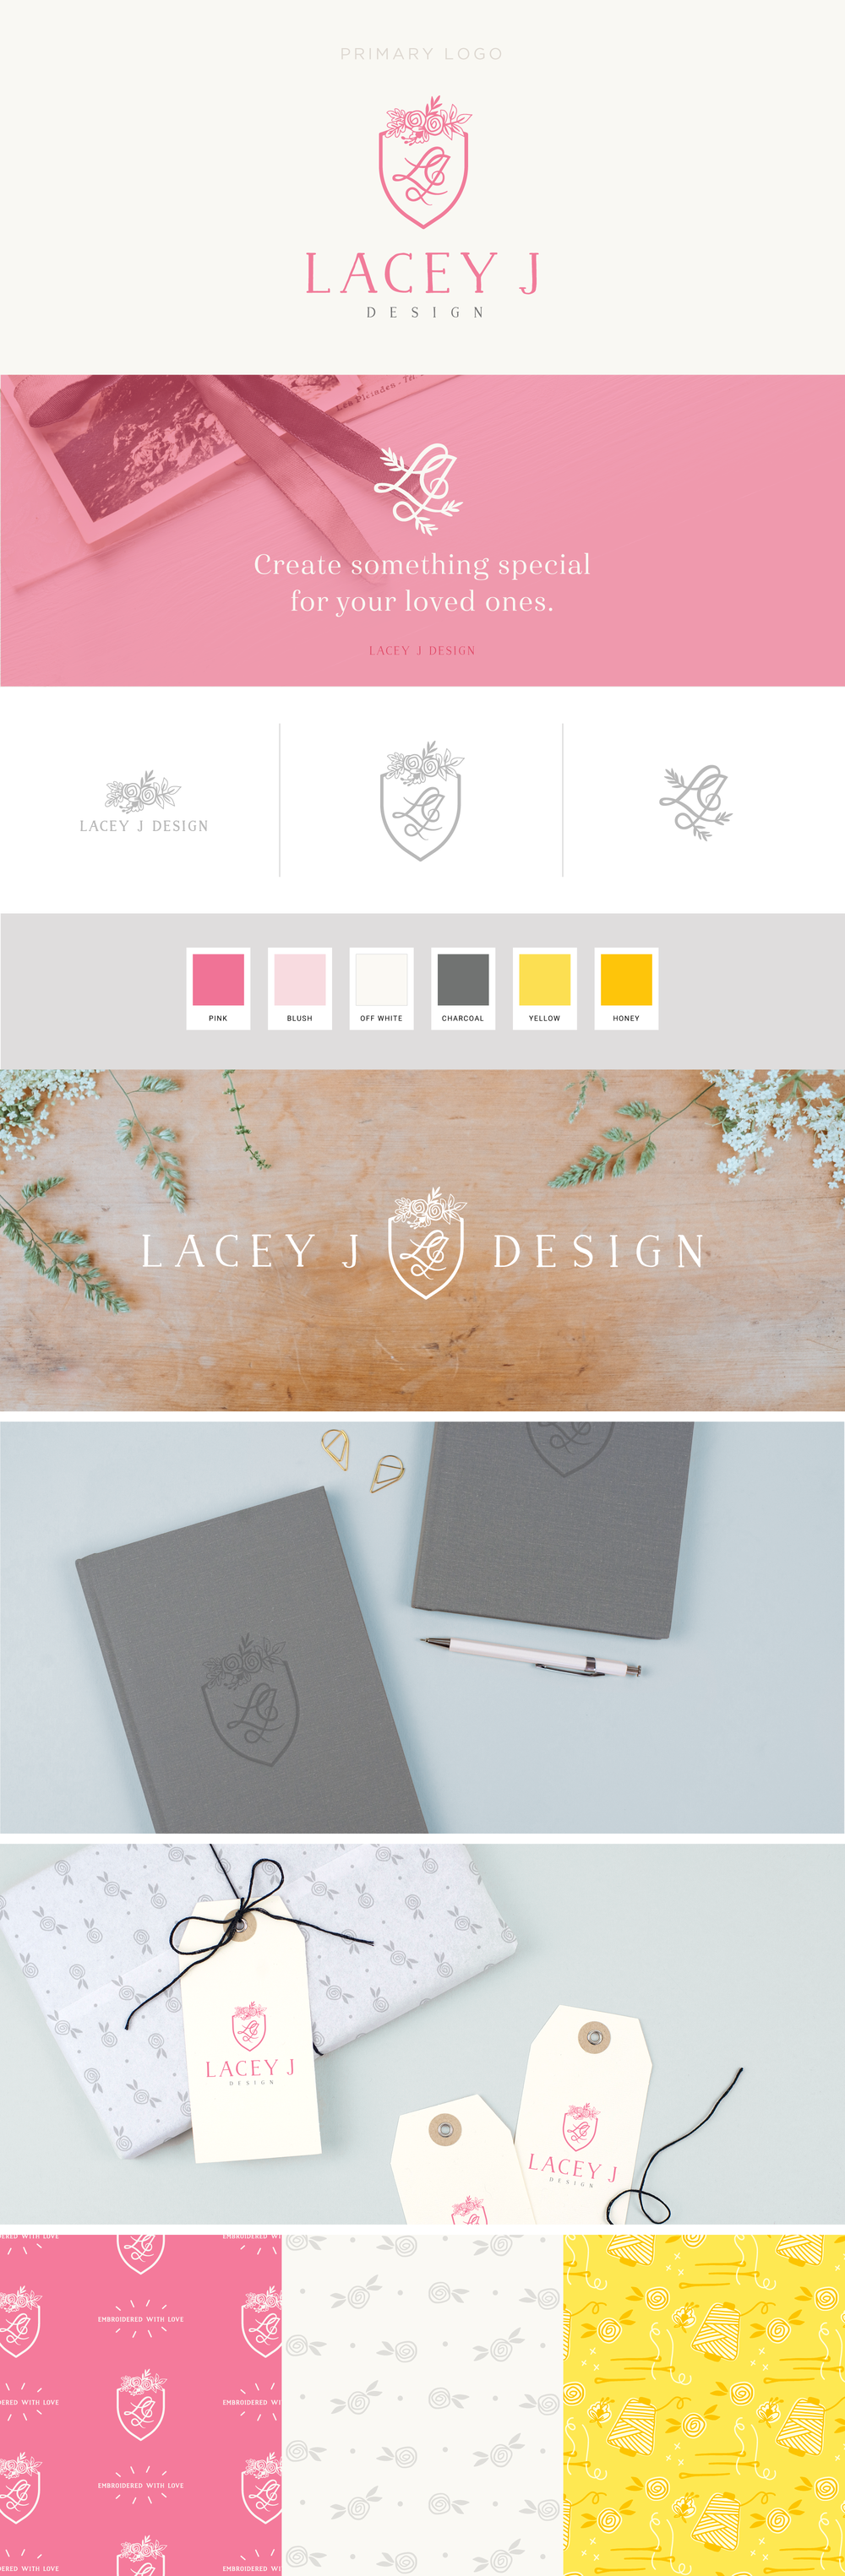 Lacey J Design brand design | Collaboration between Spruce Rd and Pace Creative Design Studio